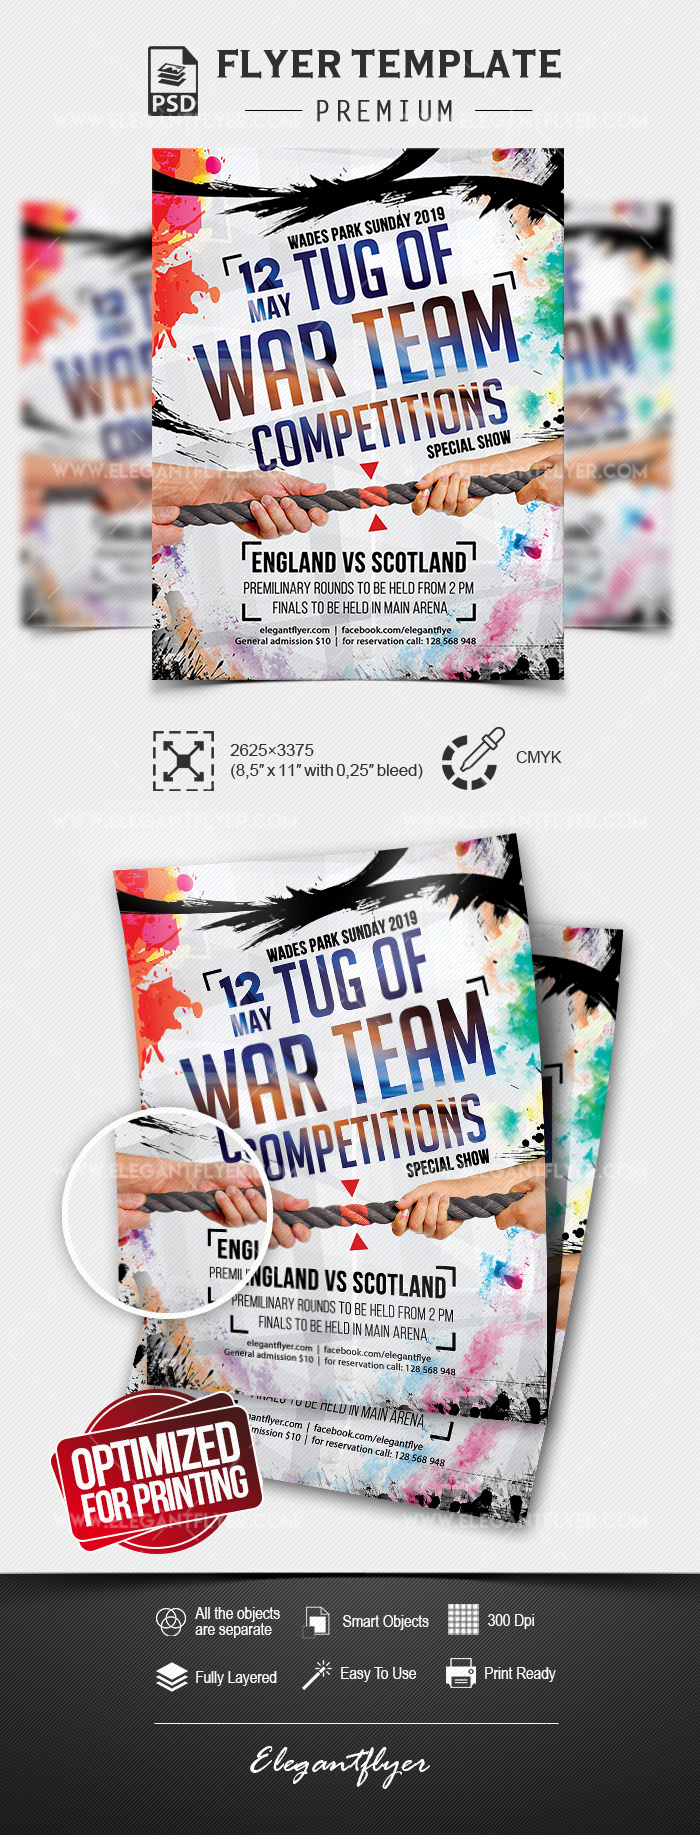 Tug of War Team Competitions – Premium PSD Flyer Template